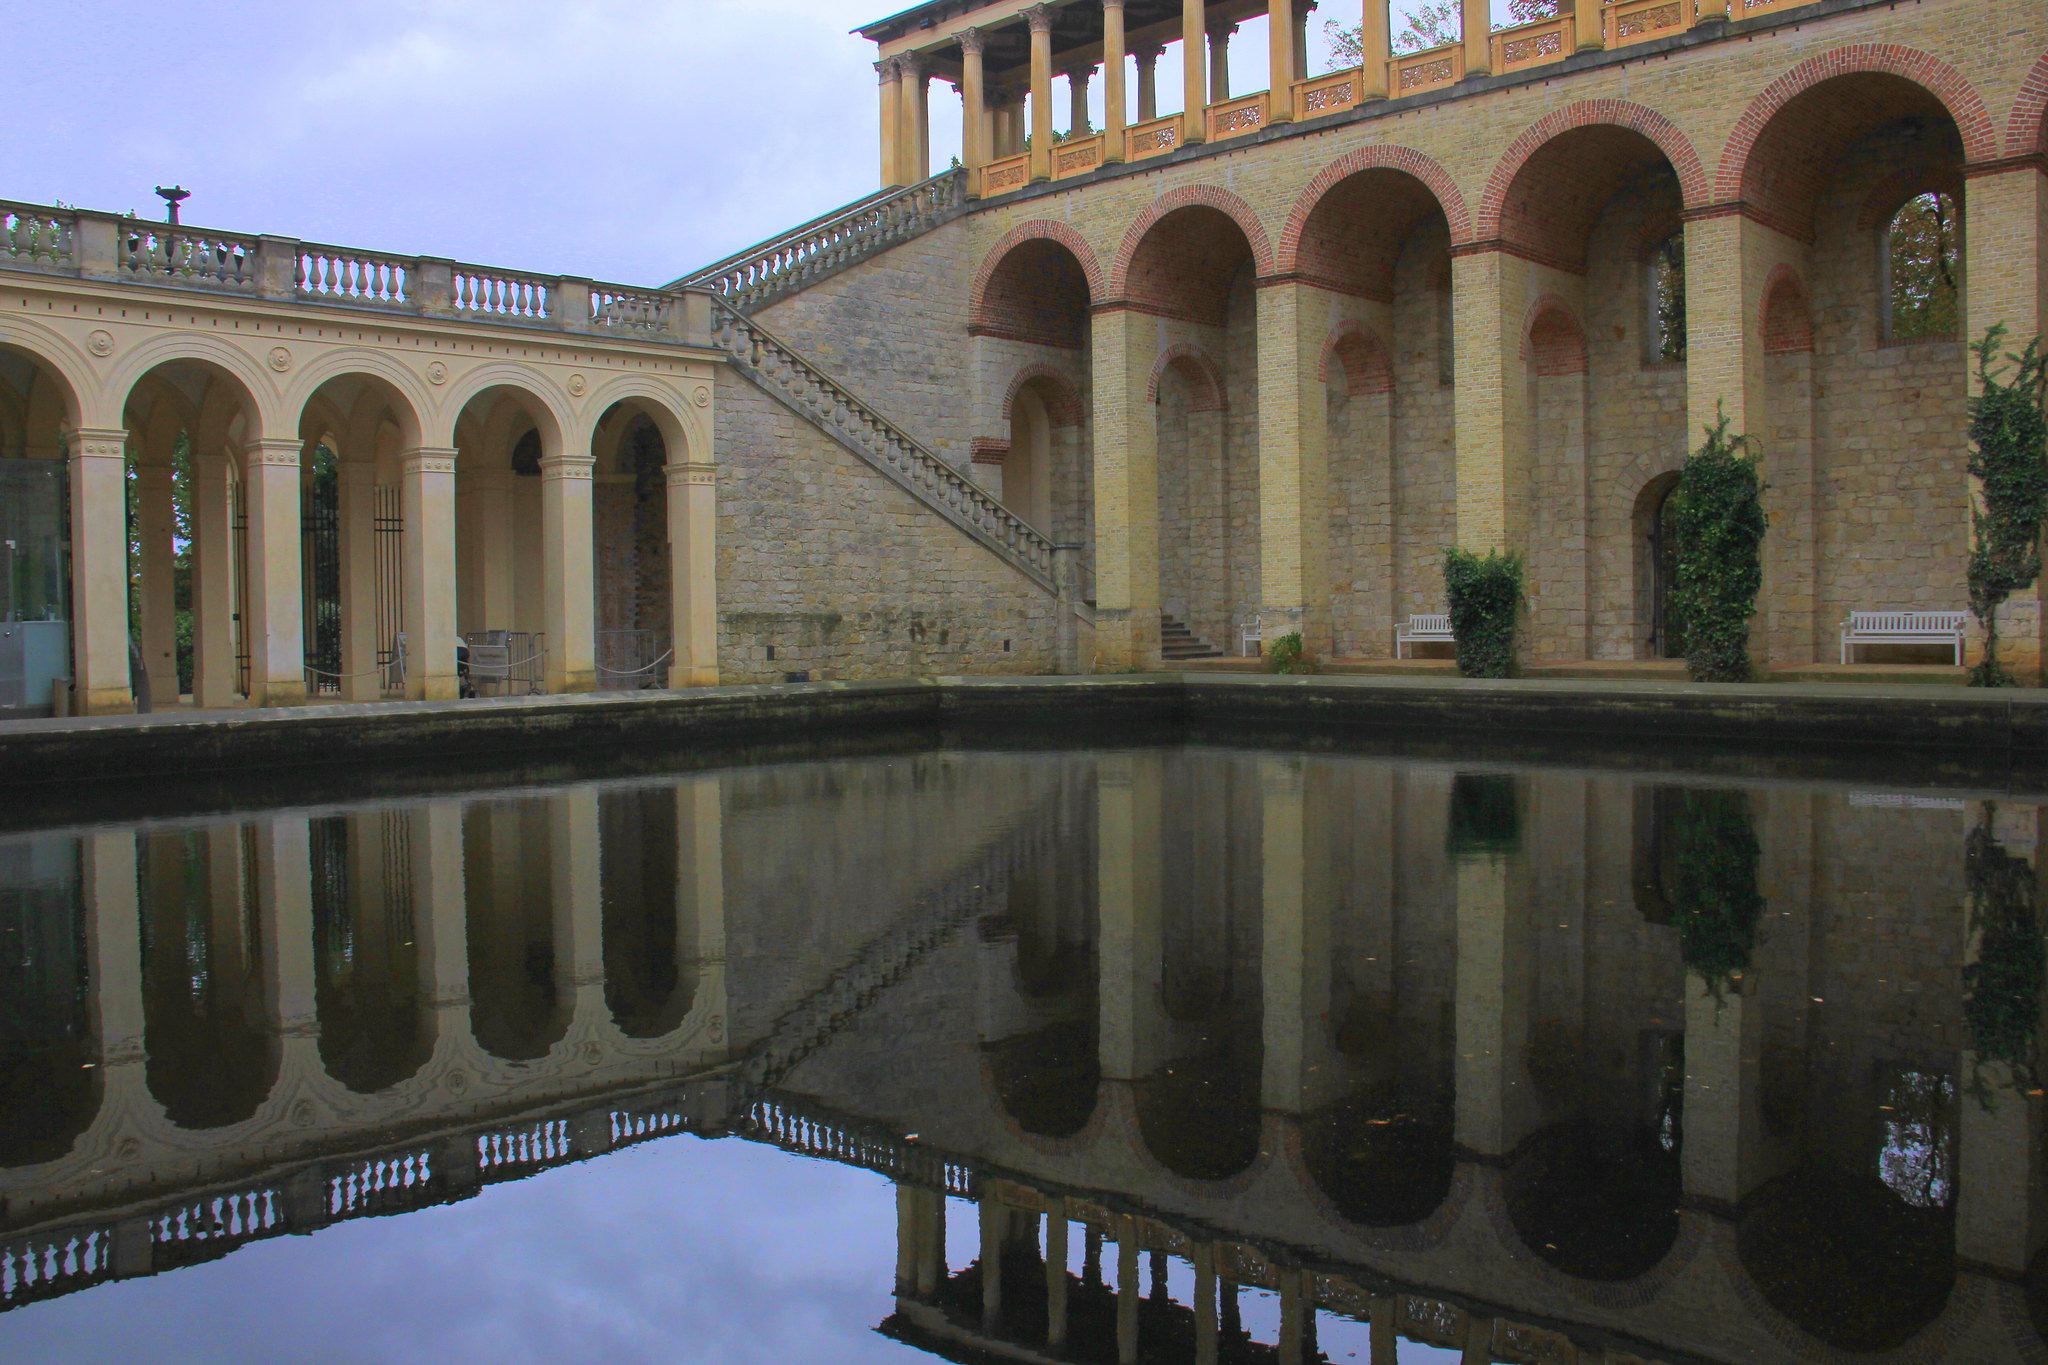 Belvedere is one of the loveliest buildings of Potsdam